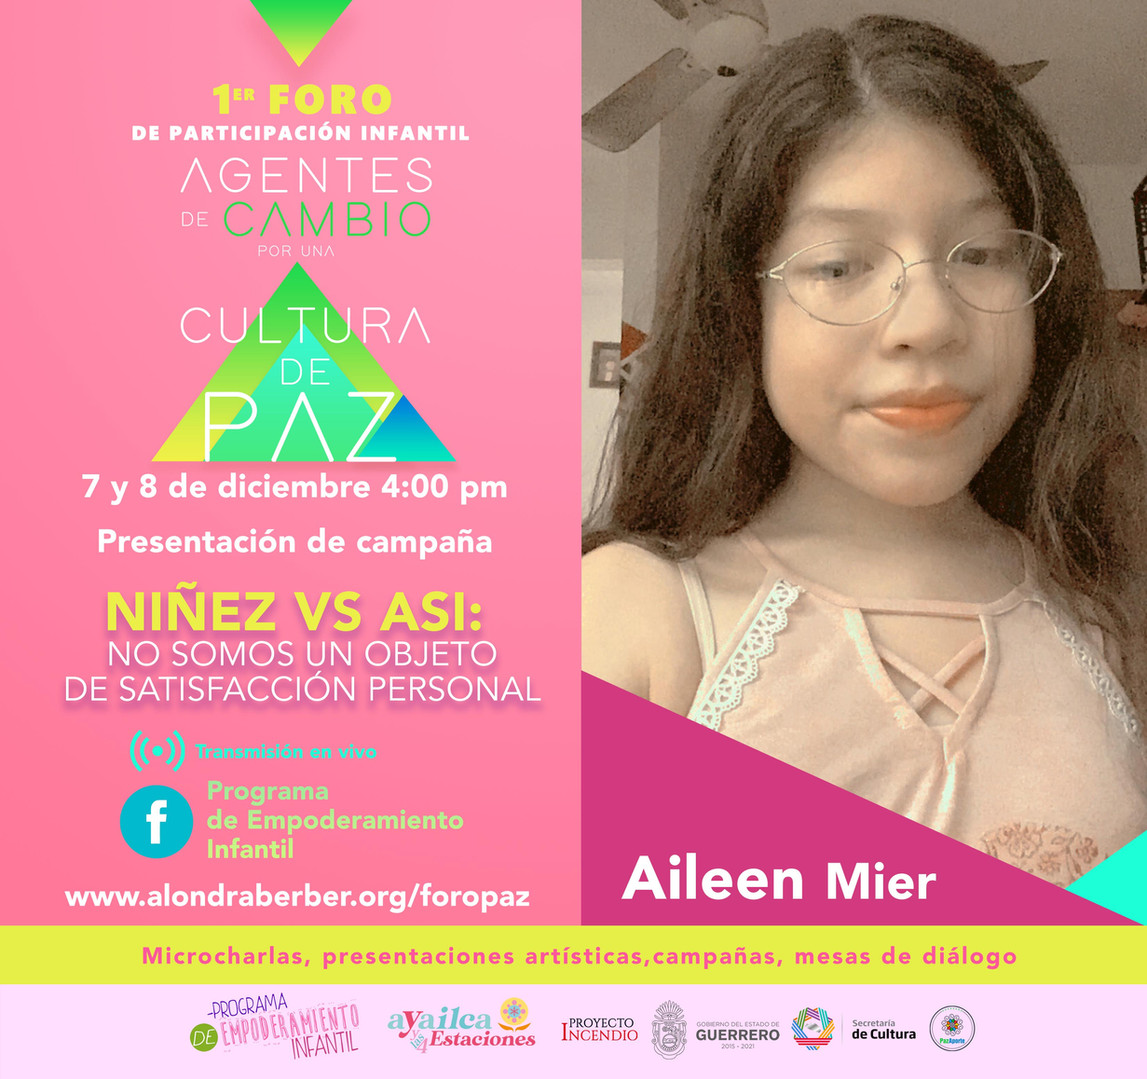 Aileen Mier / Foro Paz